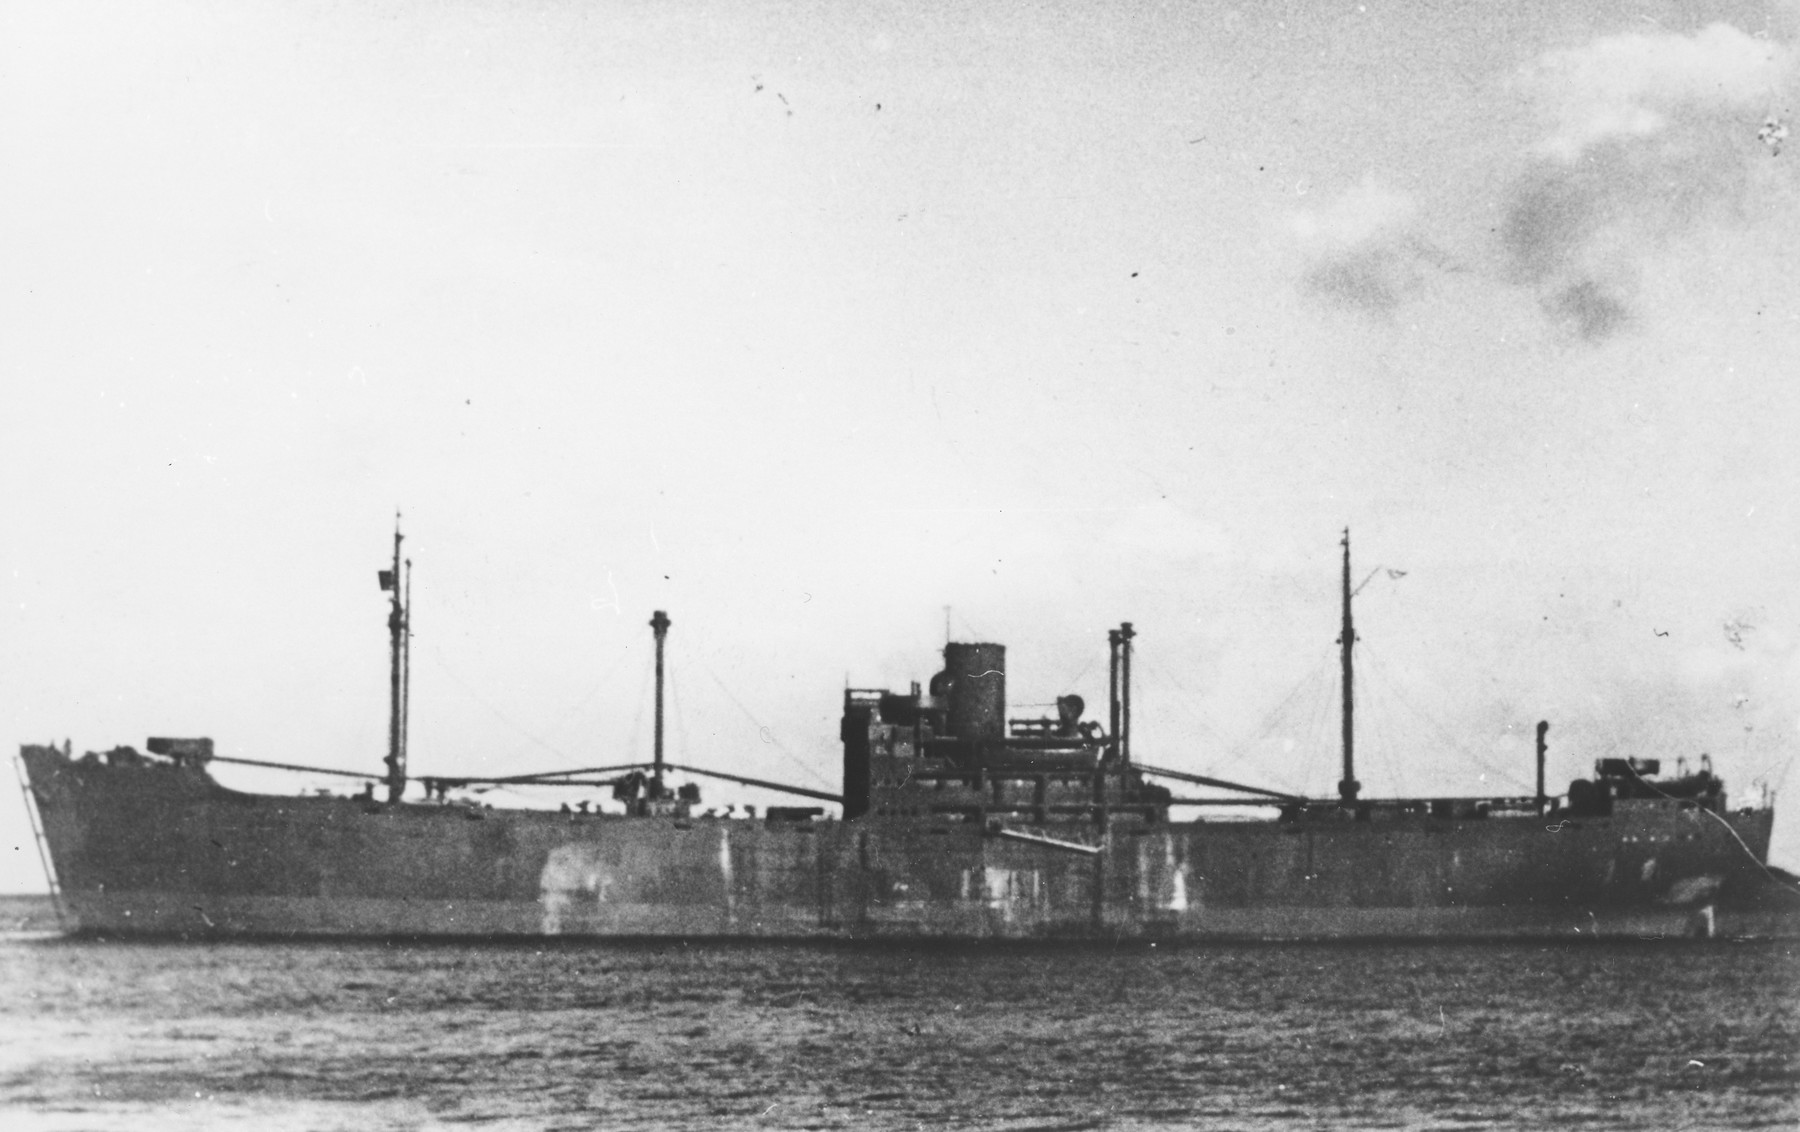 View of the SS Gotenland, one of the ships used to deport Jews from Norway to Germany.    Only 25 of the 760 Jews deported from Norway survived.